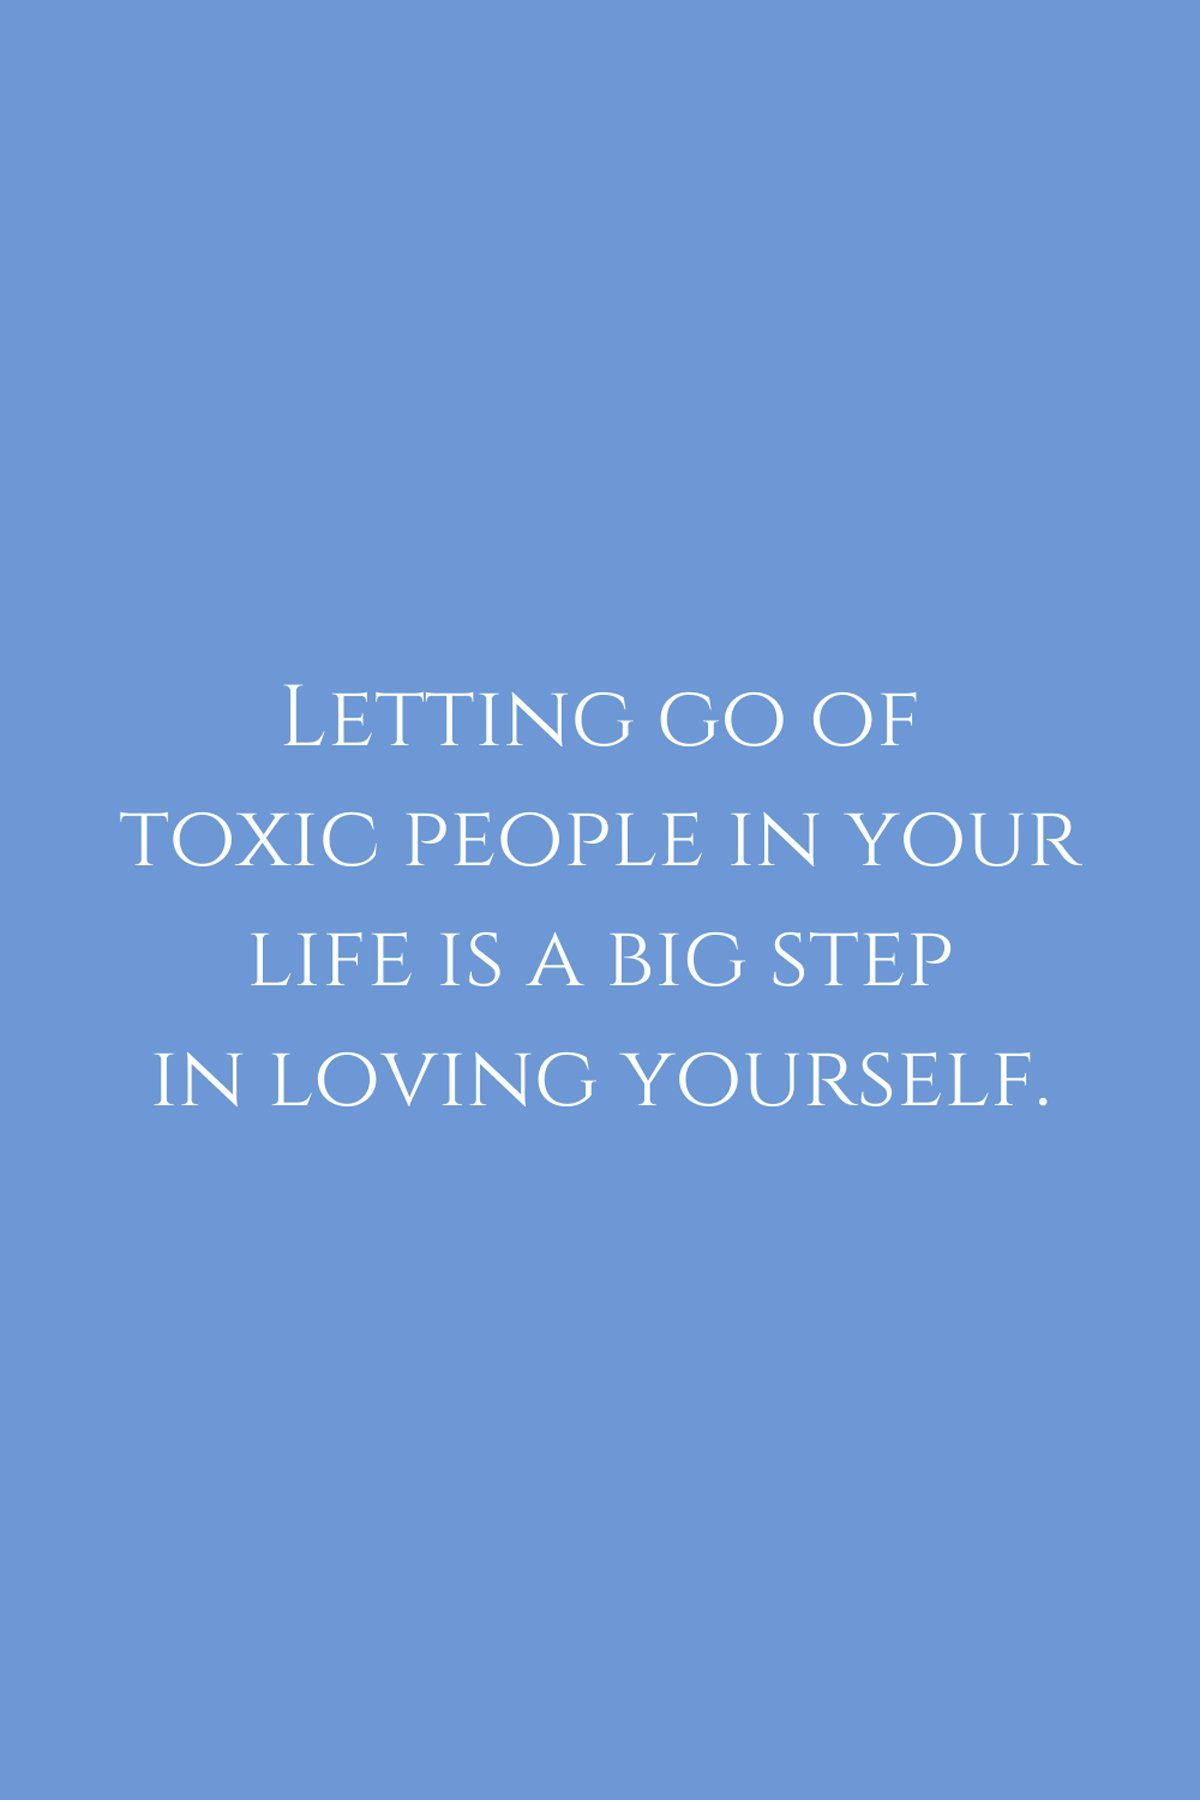 Toxic People Letting Go Quotes